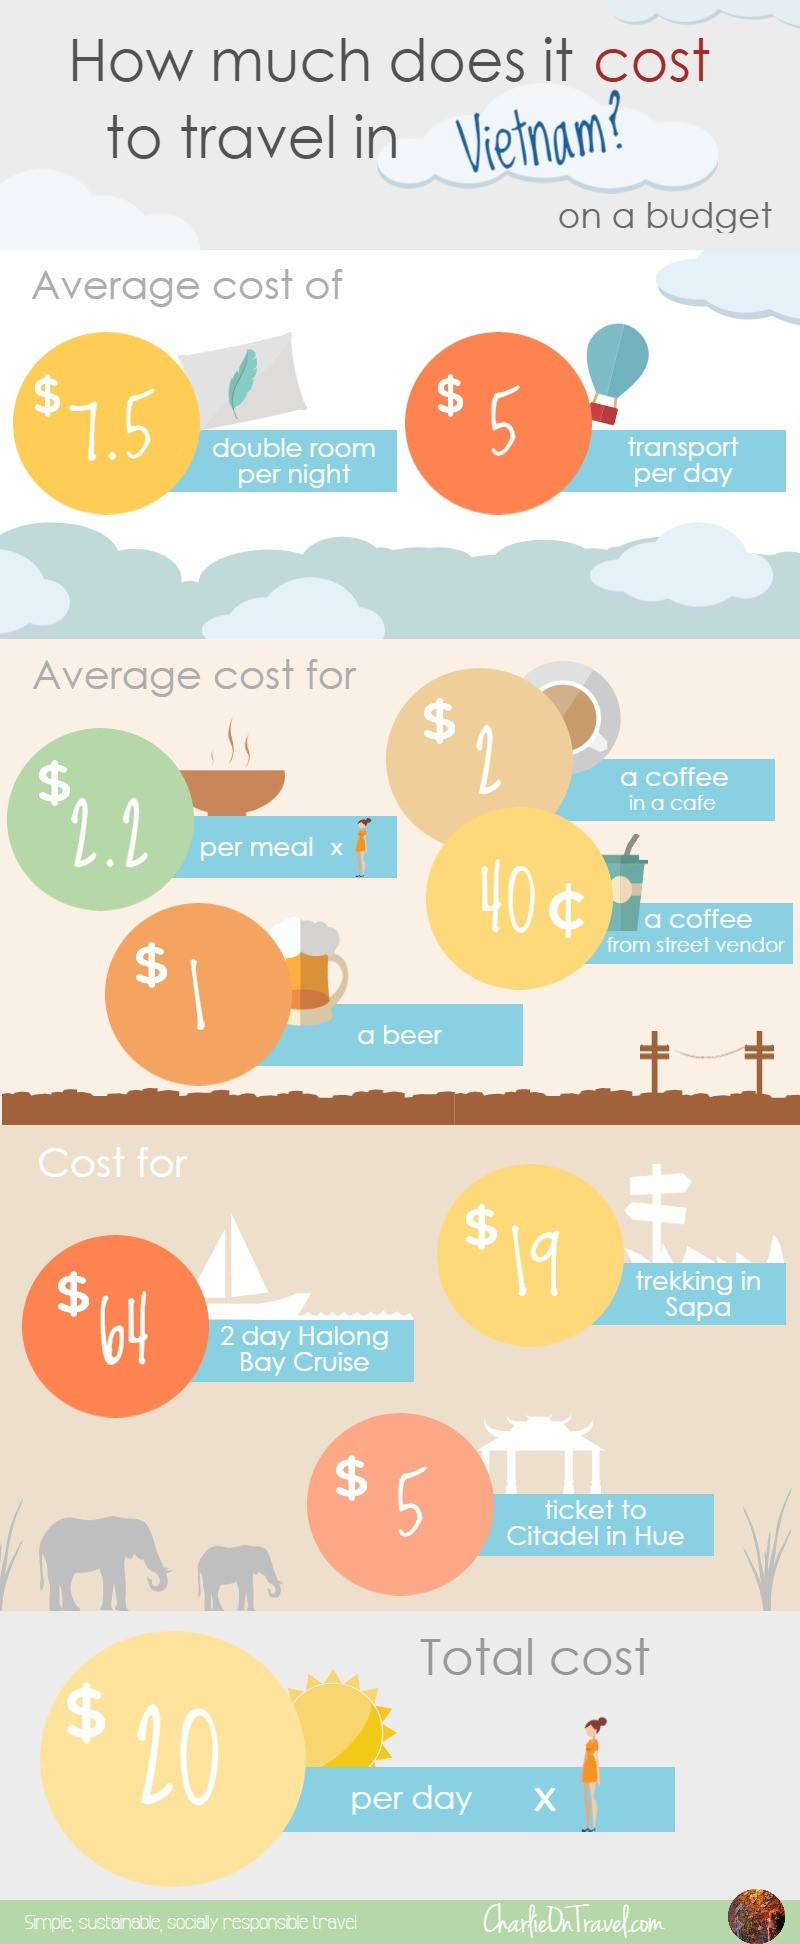 How Much Does It Cost To Travel Vietnam?  Charlie On Travel. Why Is Wheezing Usually Worse When Asthmatics Exhale. Electricians In Dallas Adp Board Of Directors. Clothing Inventory Software Rapid Detox Nj. When Was The First Email Sent. Lana Del Rey Plastic Surgery. Ifr Instrument Requirements Vestas Wind Jobs. Greek Yogurt Vs Regular Yogurt. Find A Dentist Charlotte Nc Med Spa Lewes De